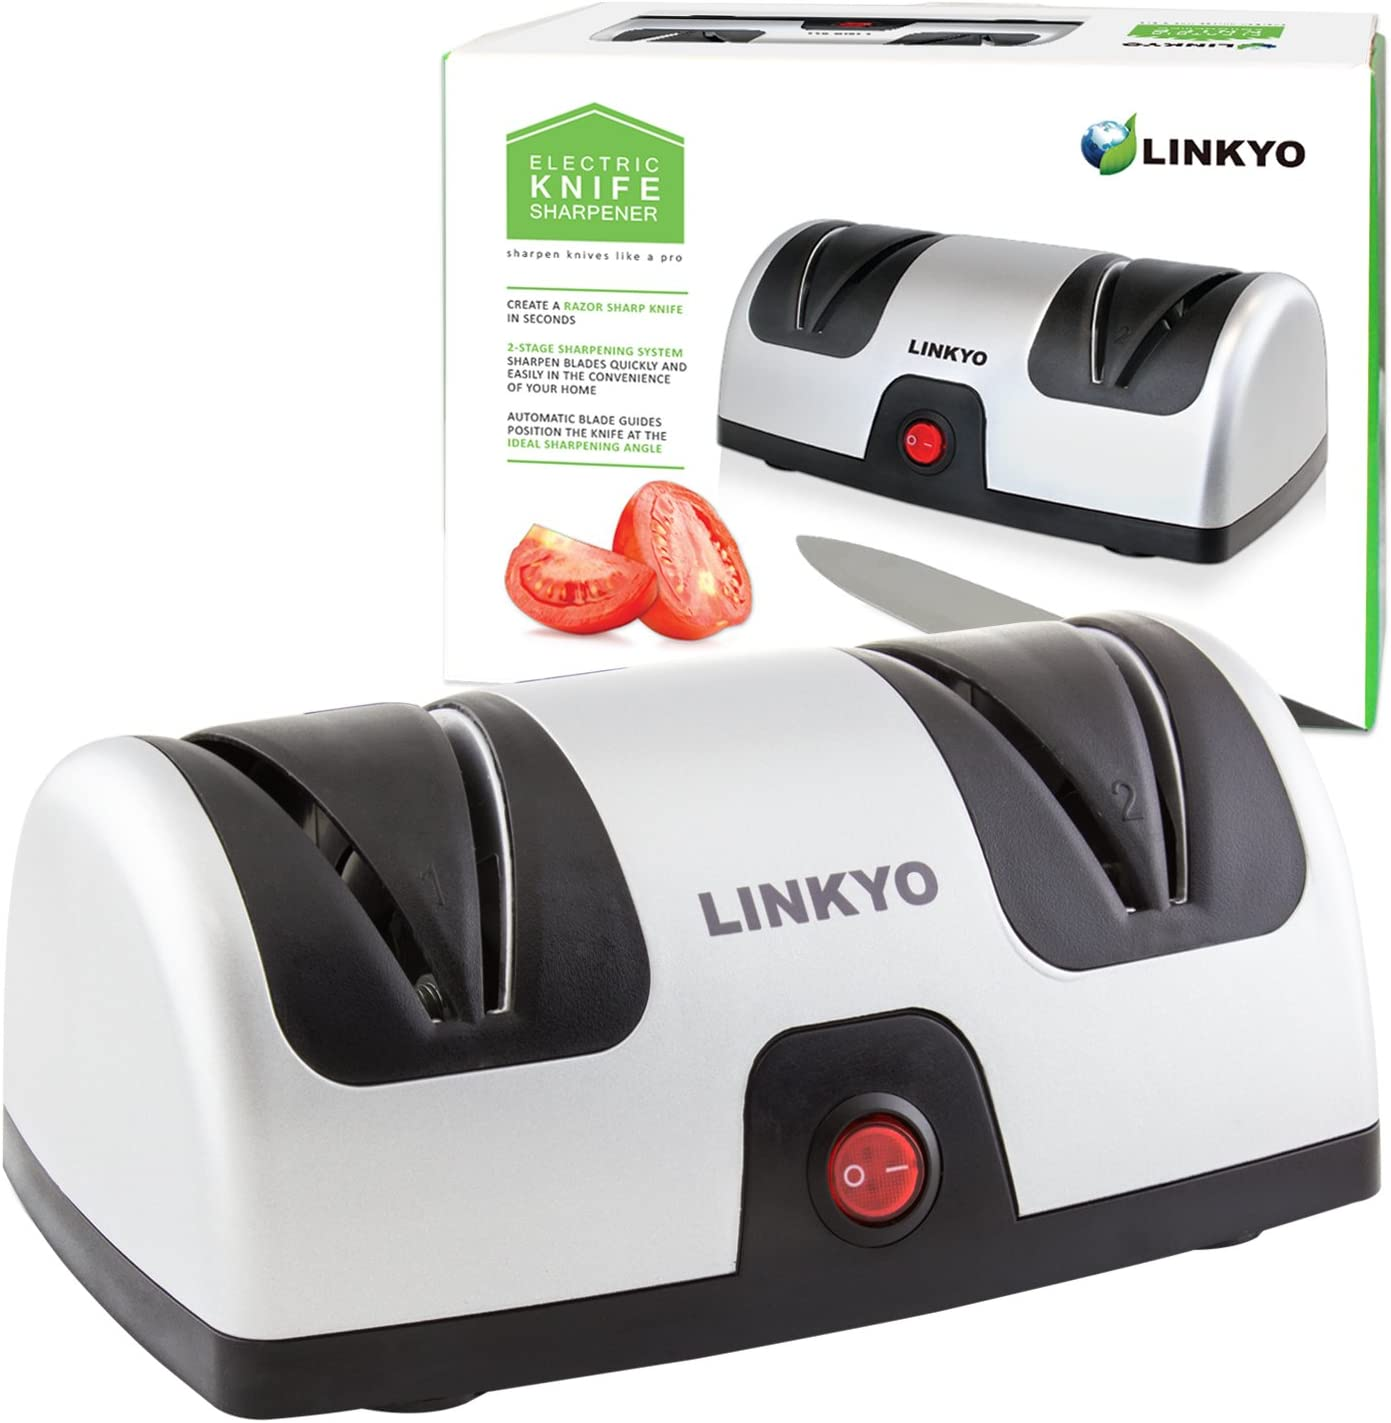 LINKYO Electric Knife Sharpener